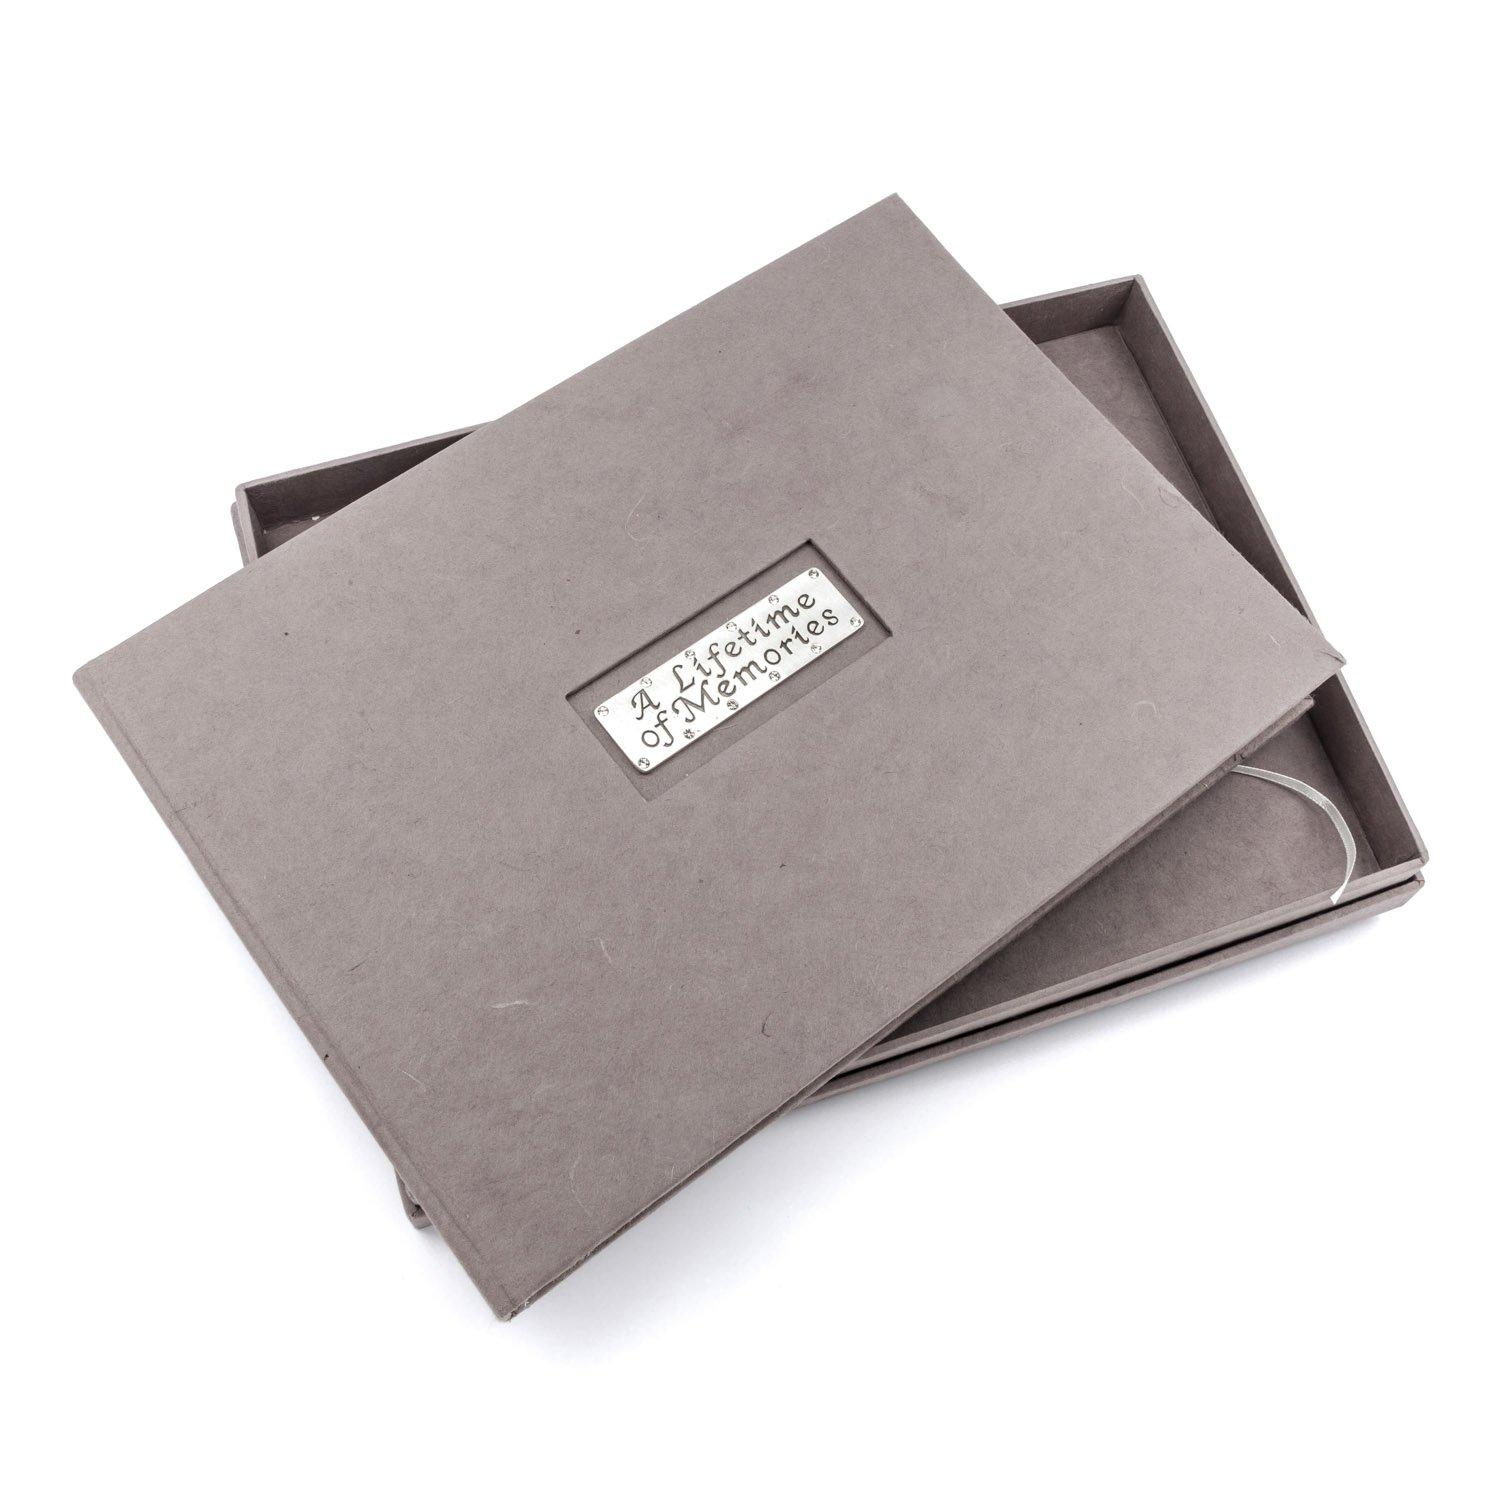 In Memory Funeral Condolence A4 size grey guestbook with presentation box Metal Planet